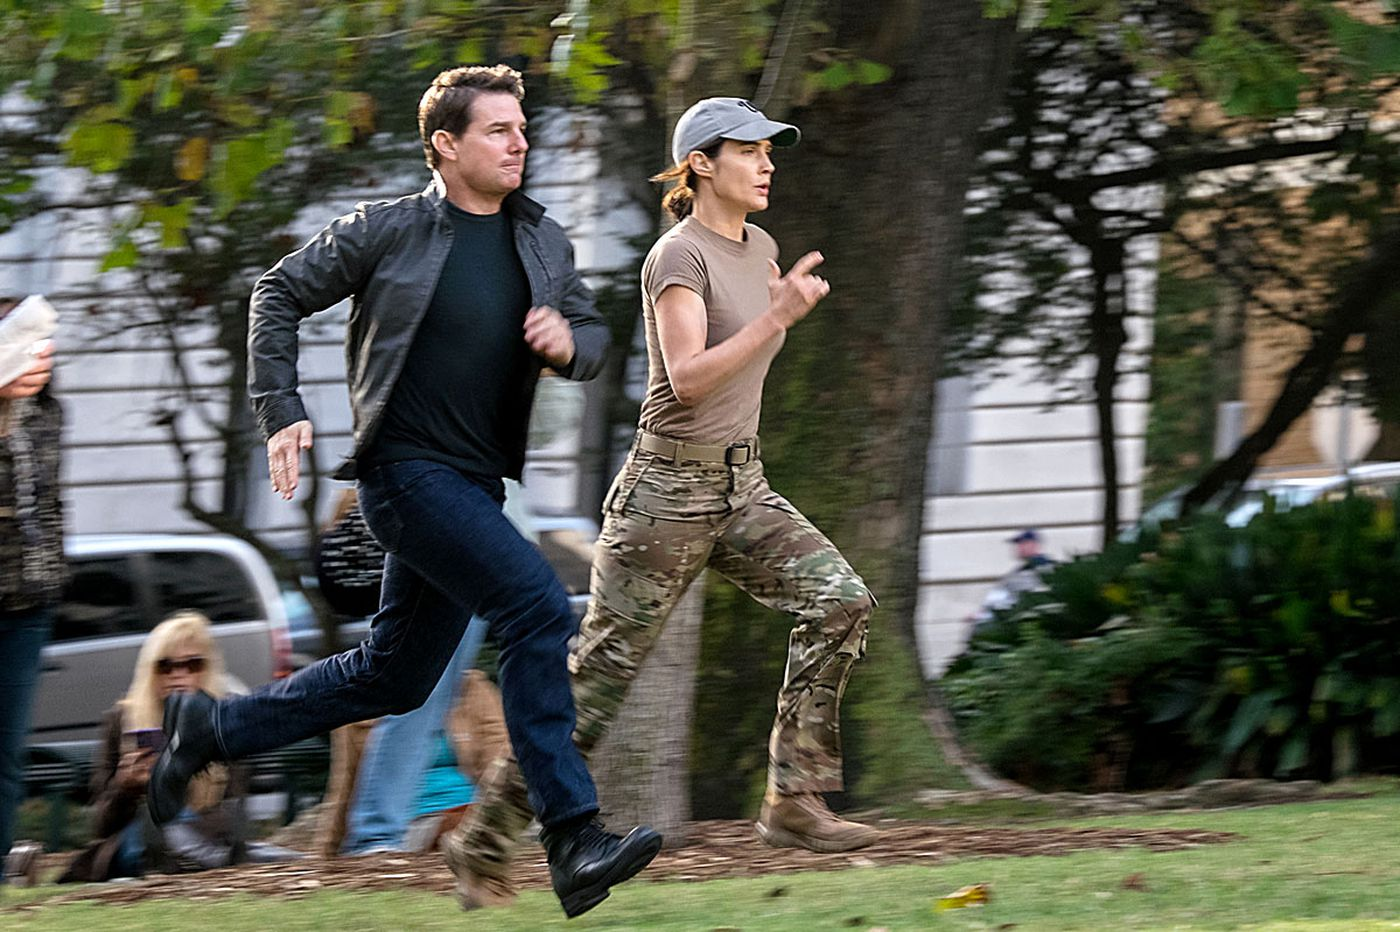 Tom Cruise delights as lone gun Jack Reacher in a thrilling sequel that's even better than the first